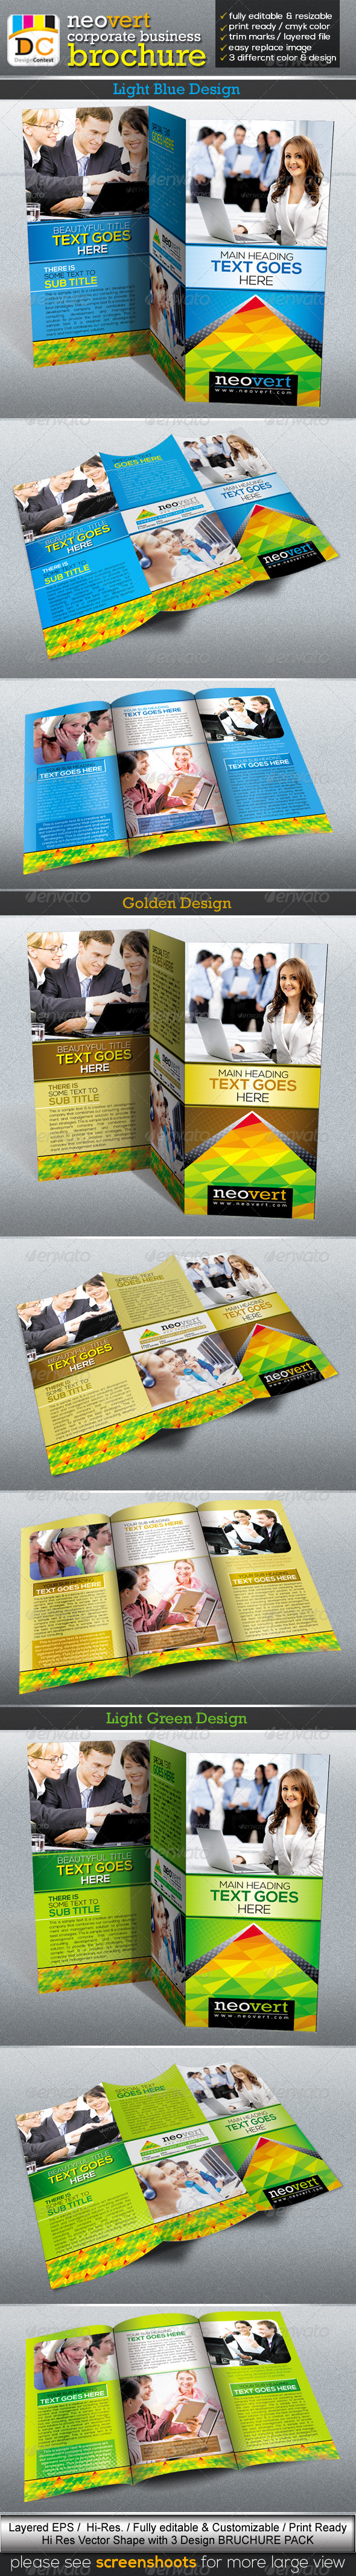 GraphicRiver NeoVert Tri-fold Corporate Business Brochure 4022277